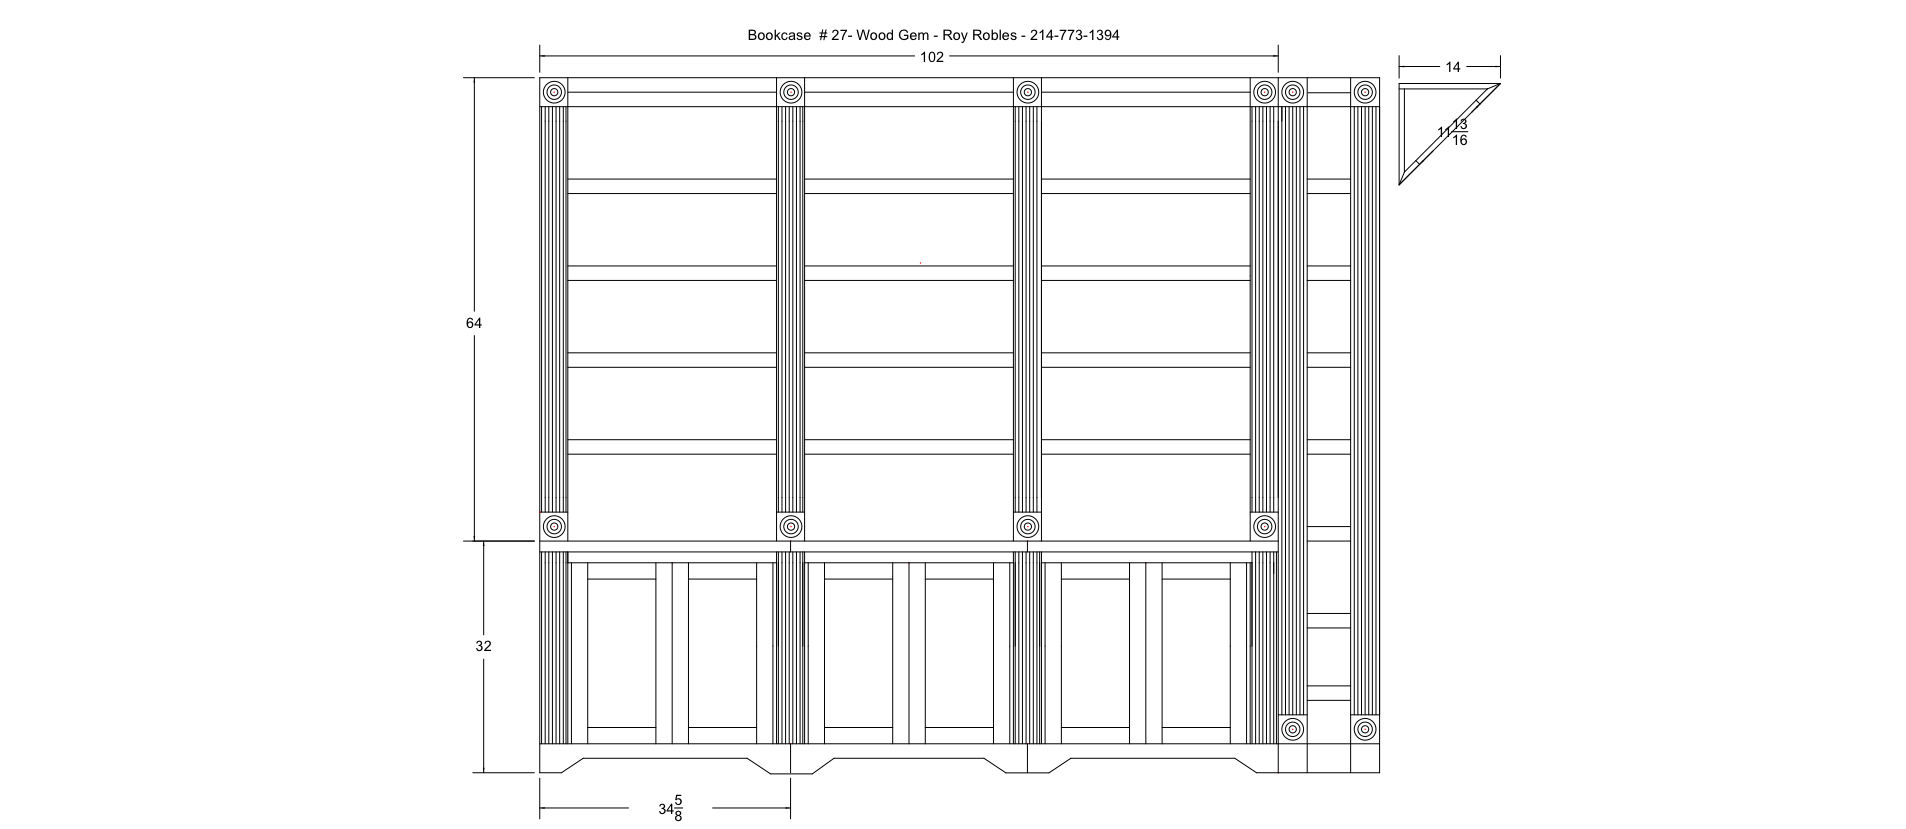 Bookcase #27.png